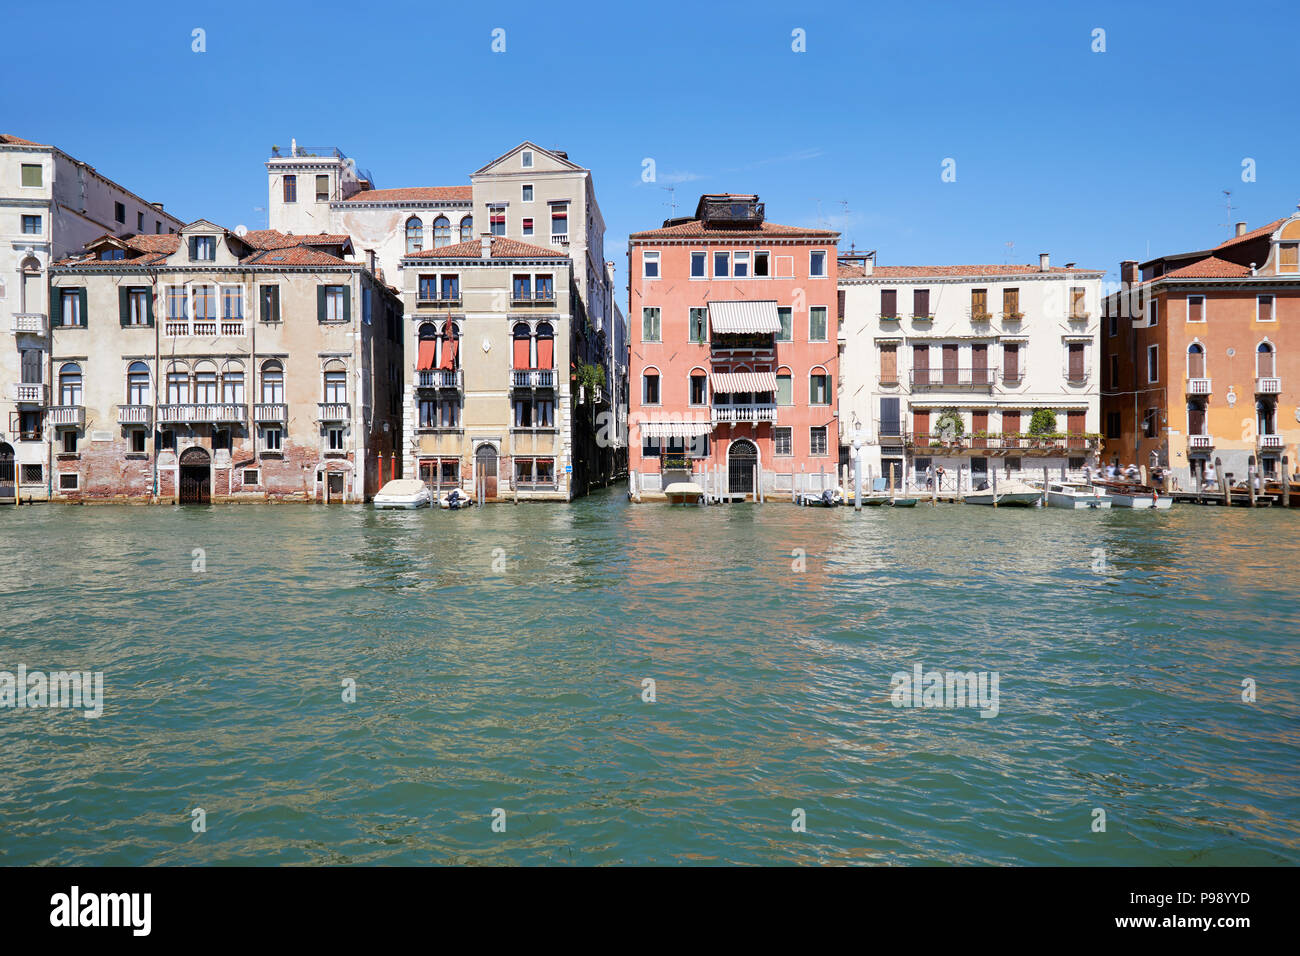 Venice houses facades and the grand canal in a sunny day in Italy - Stock Image